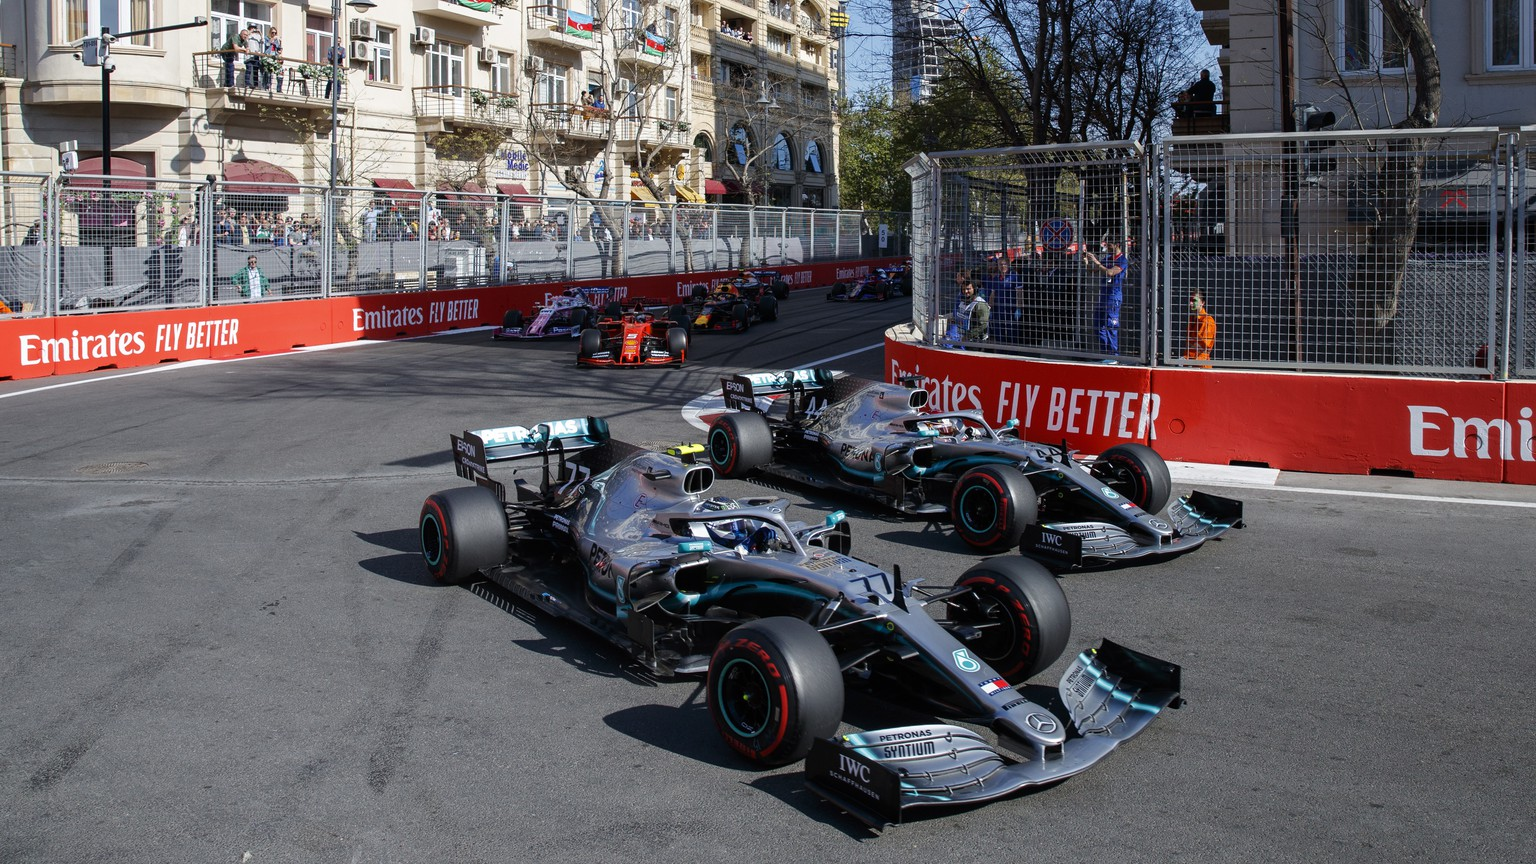 epa07534119 Finnish Formula One driver Valtteri Bottas of Mercedes AMG GP (L) and British Formula One driver Lewis Hamilton of Mercedes AMG GP (R) in action during the start of the 2019 Formula One Grand Prix of Azerbaijan at the Baku City Circuit in Baku, Azerbaijan, 28 April 2019.  EPA/VALDRIN XHEMAJ